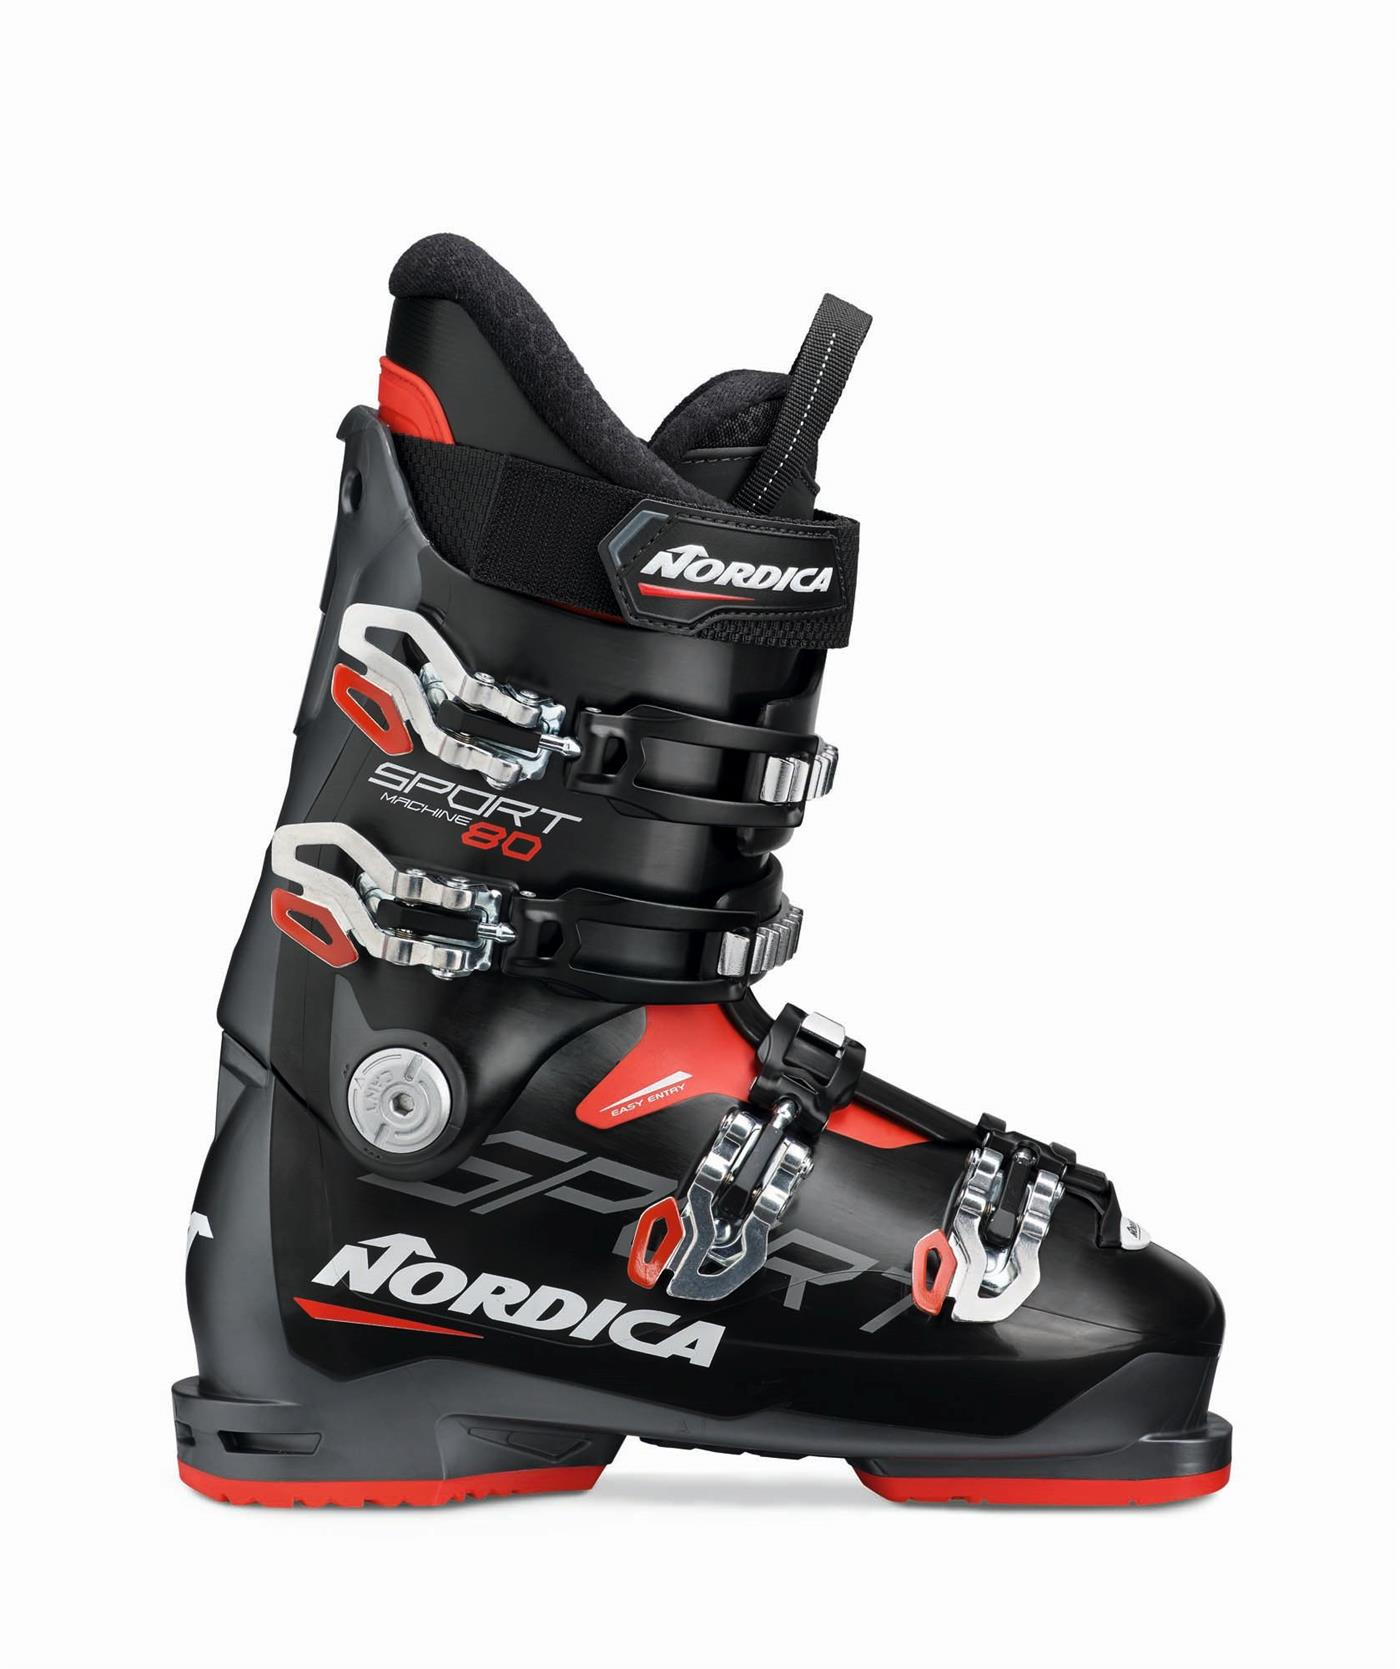 252415 Nordica 050R46017T1245 NORDICA Sportmachine 80 Sort/Grå 245 Sport Performance Alpinstøvel